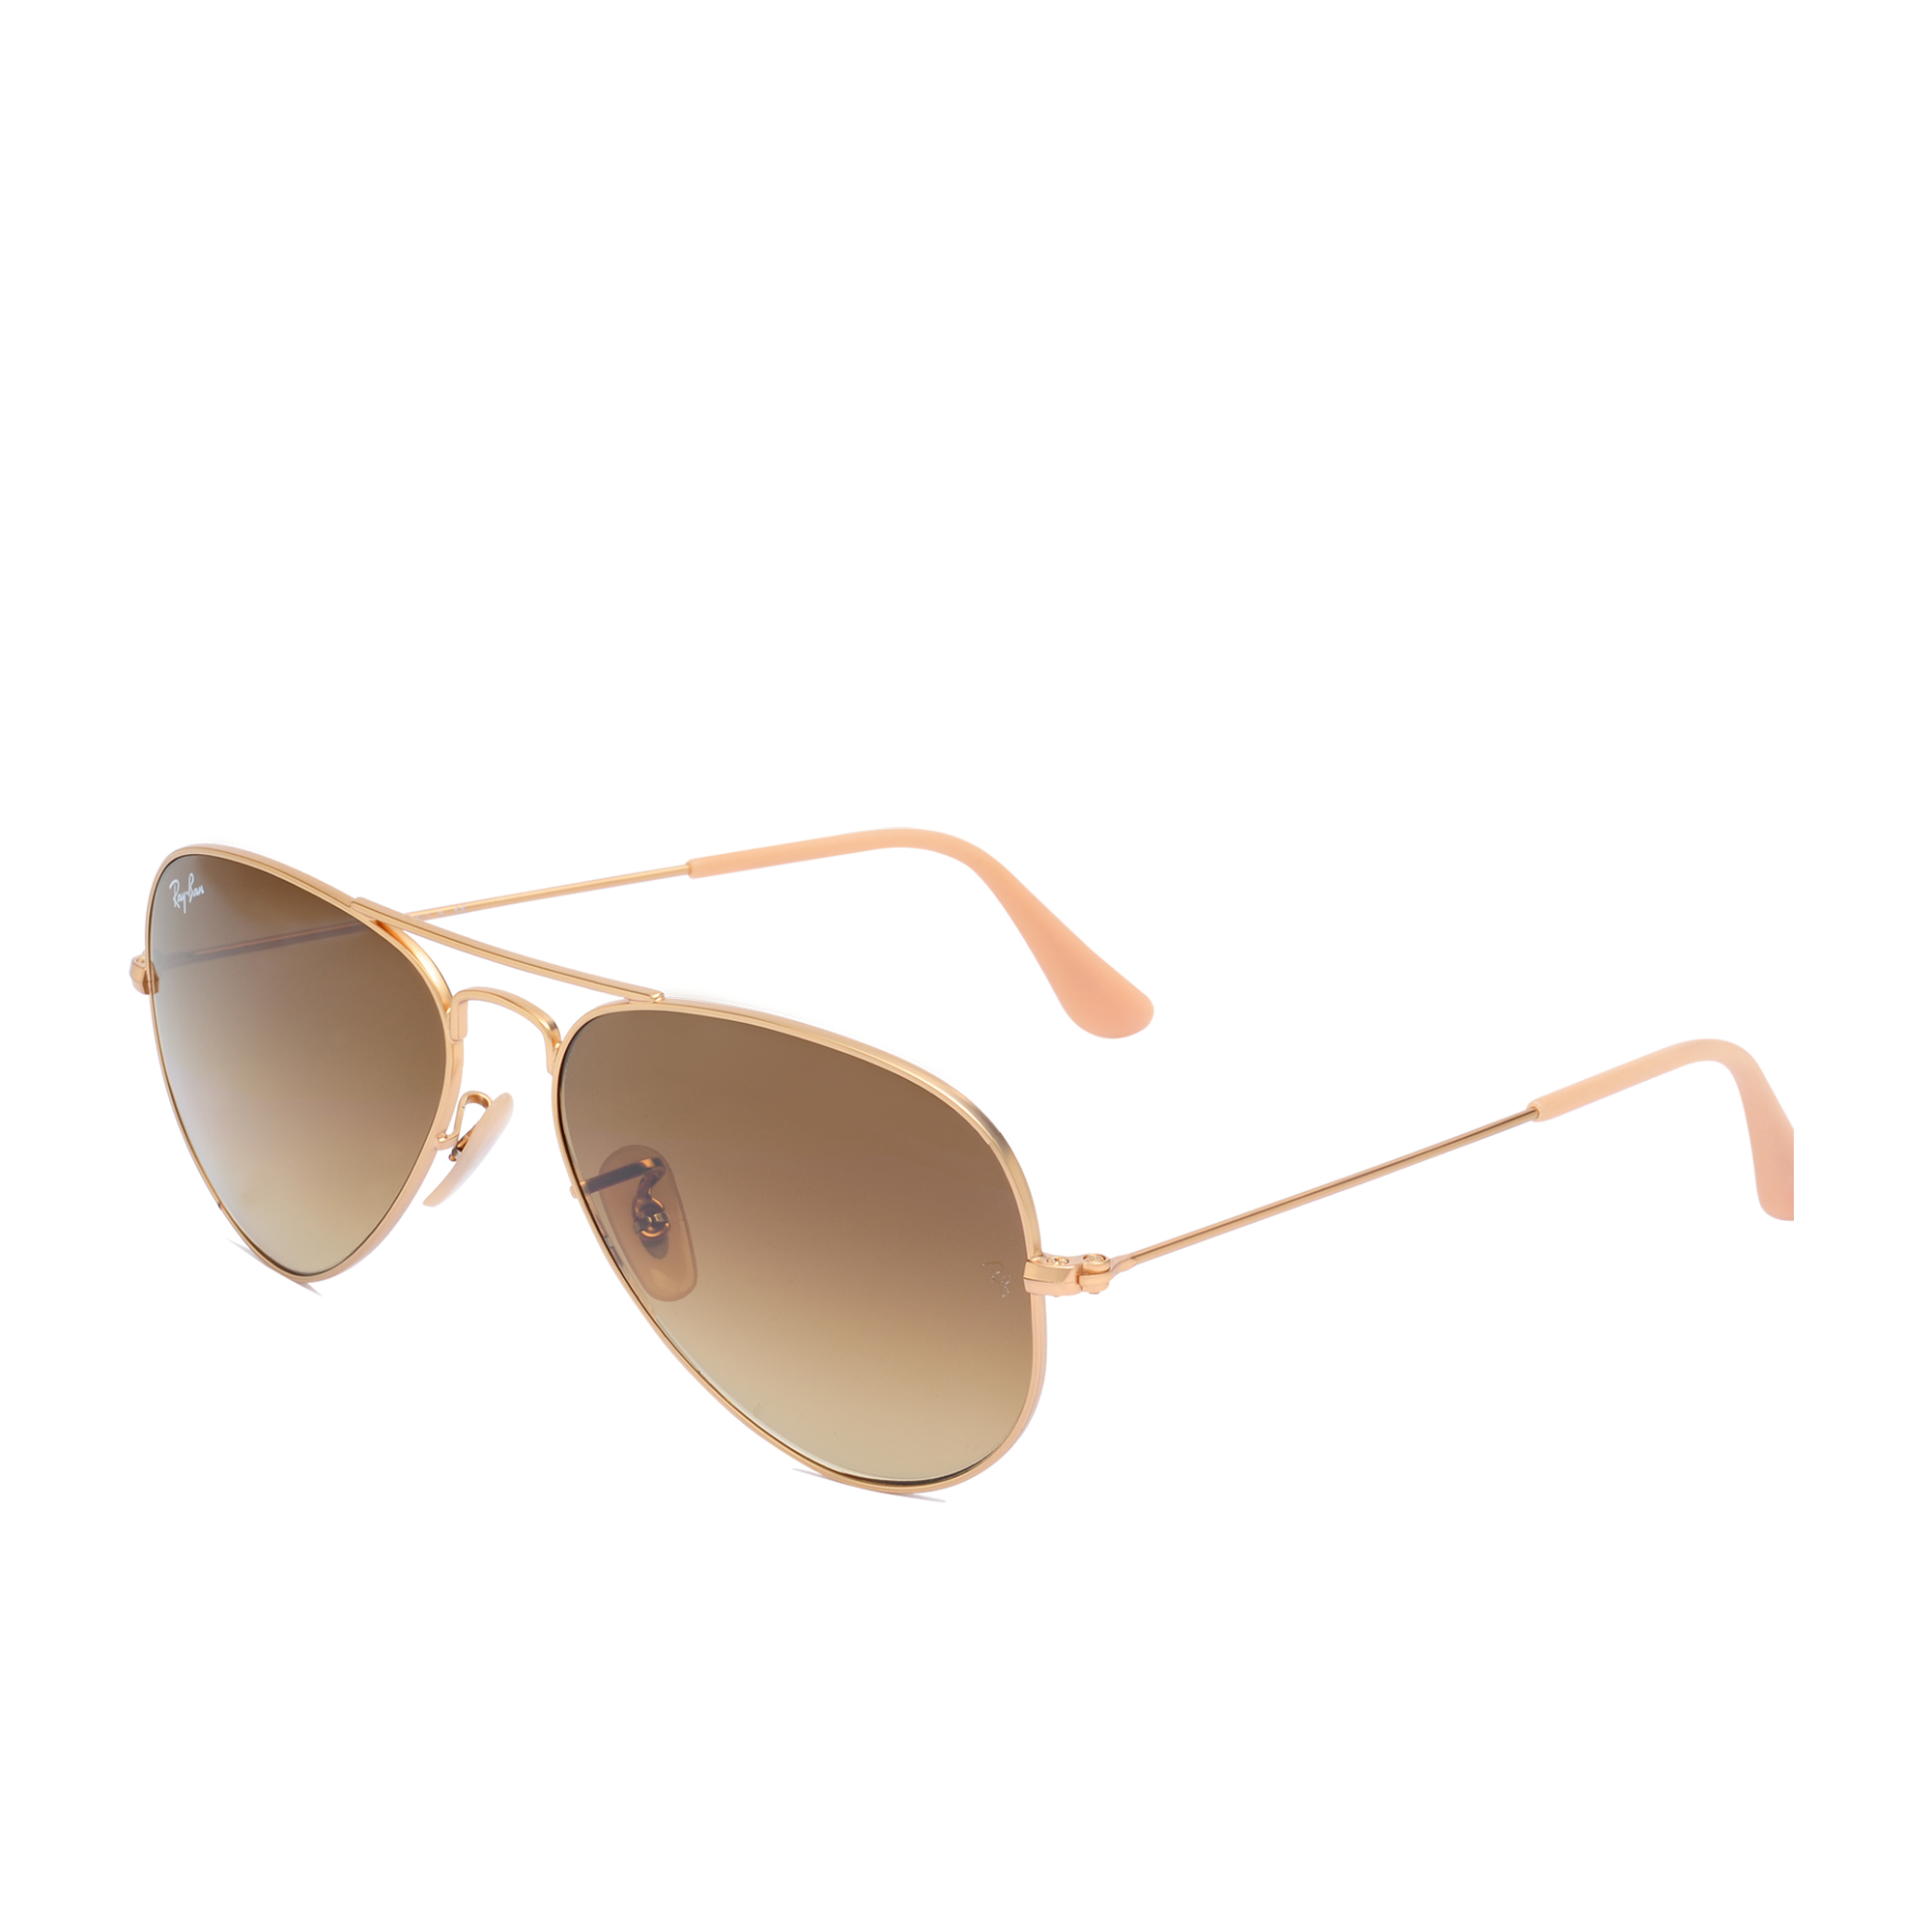 Ray ban ray ban aviator 3025 sunglasses in gold lyst for Ray ban aviator verre miroir